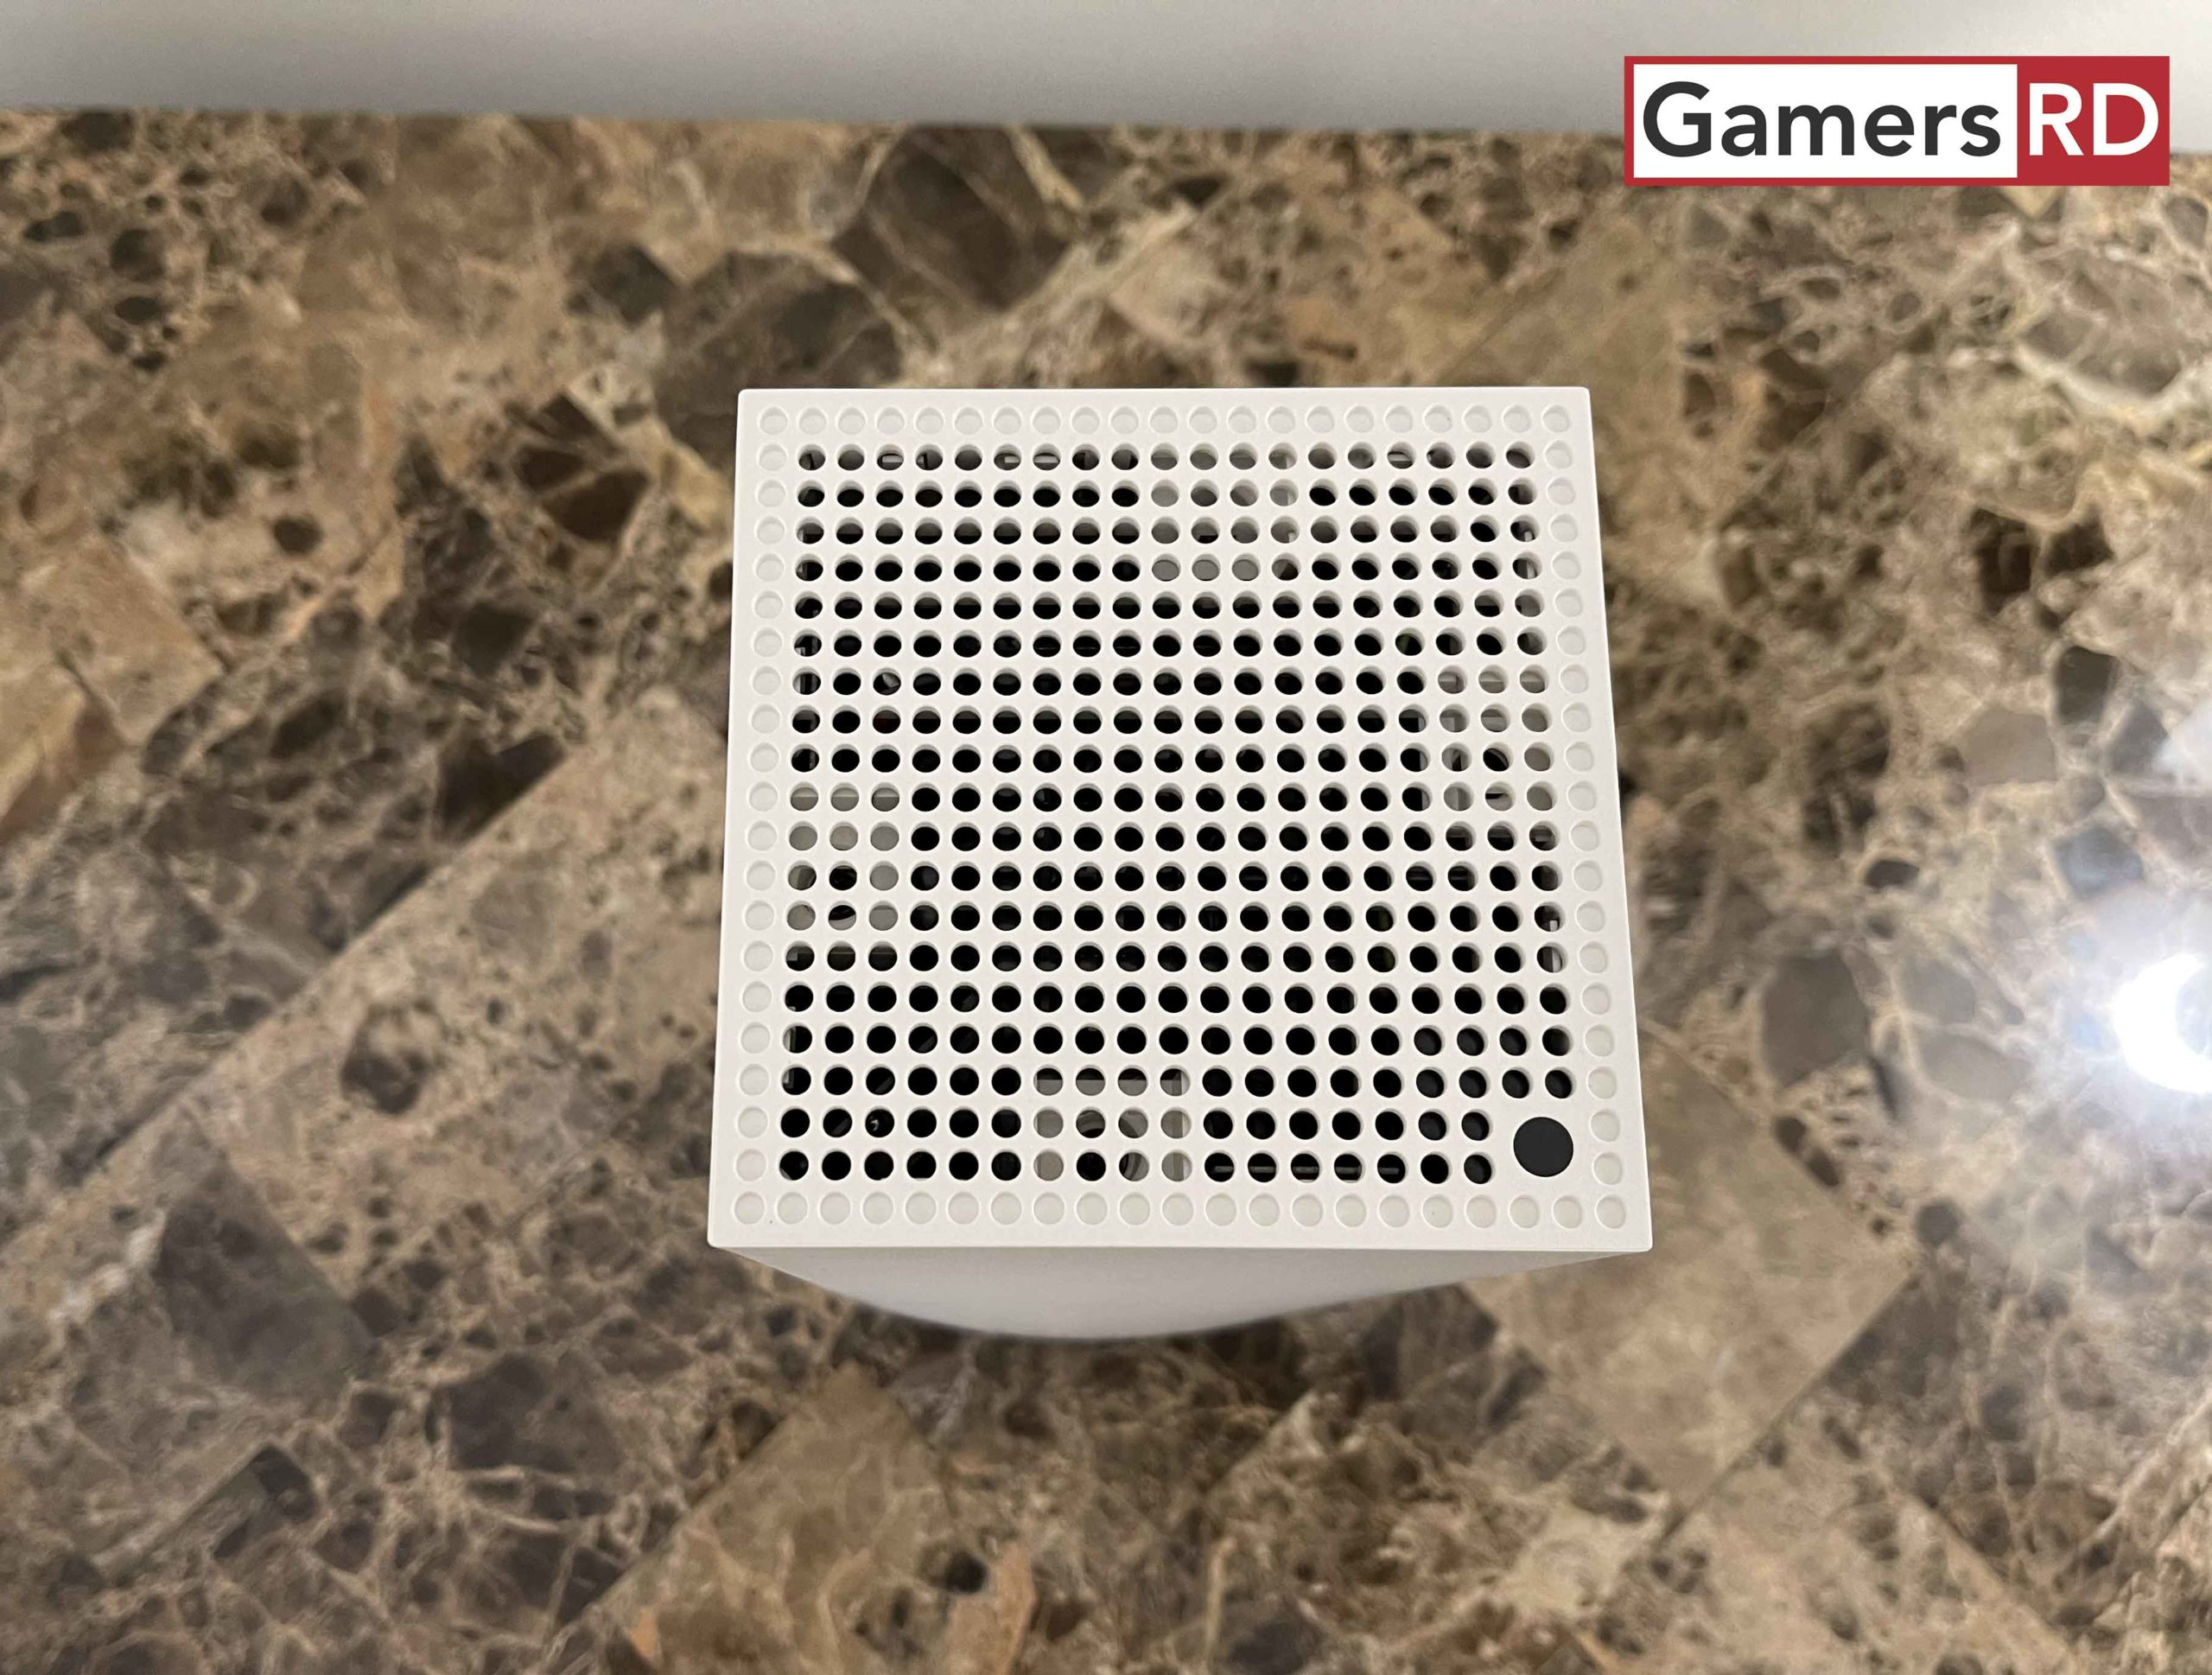 Linksys Velop AX4200 WiFi 6 Mesh System Review, 5 GamersRD